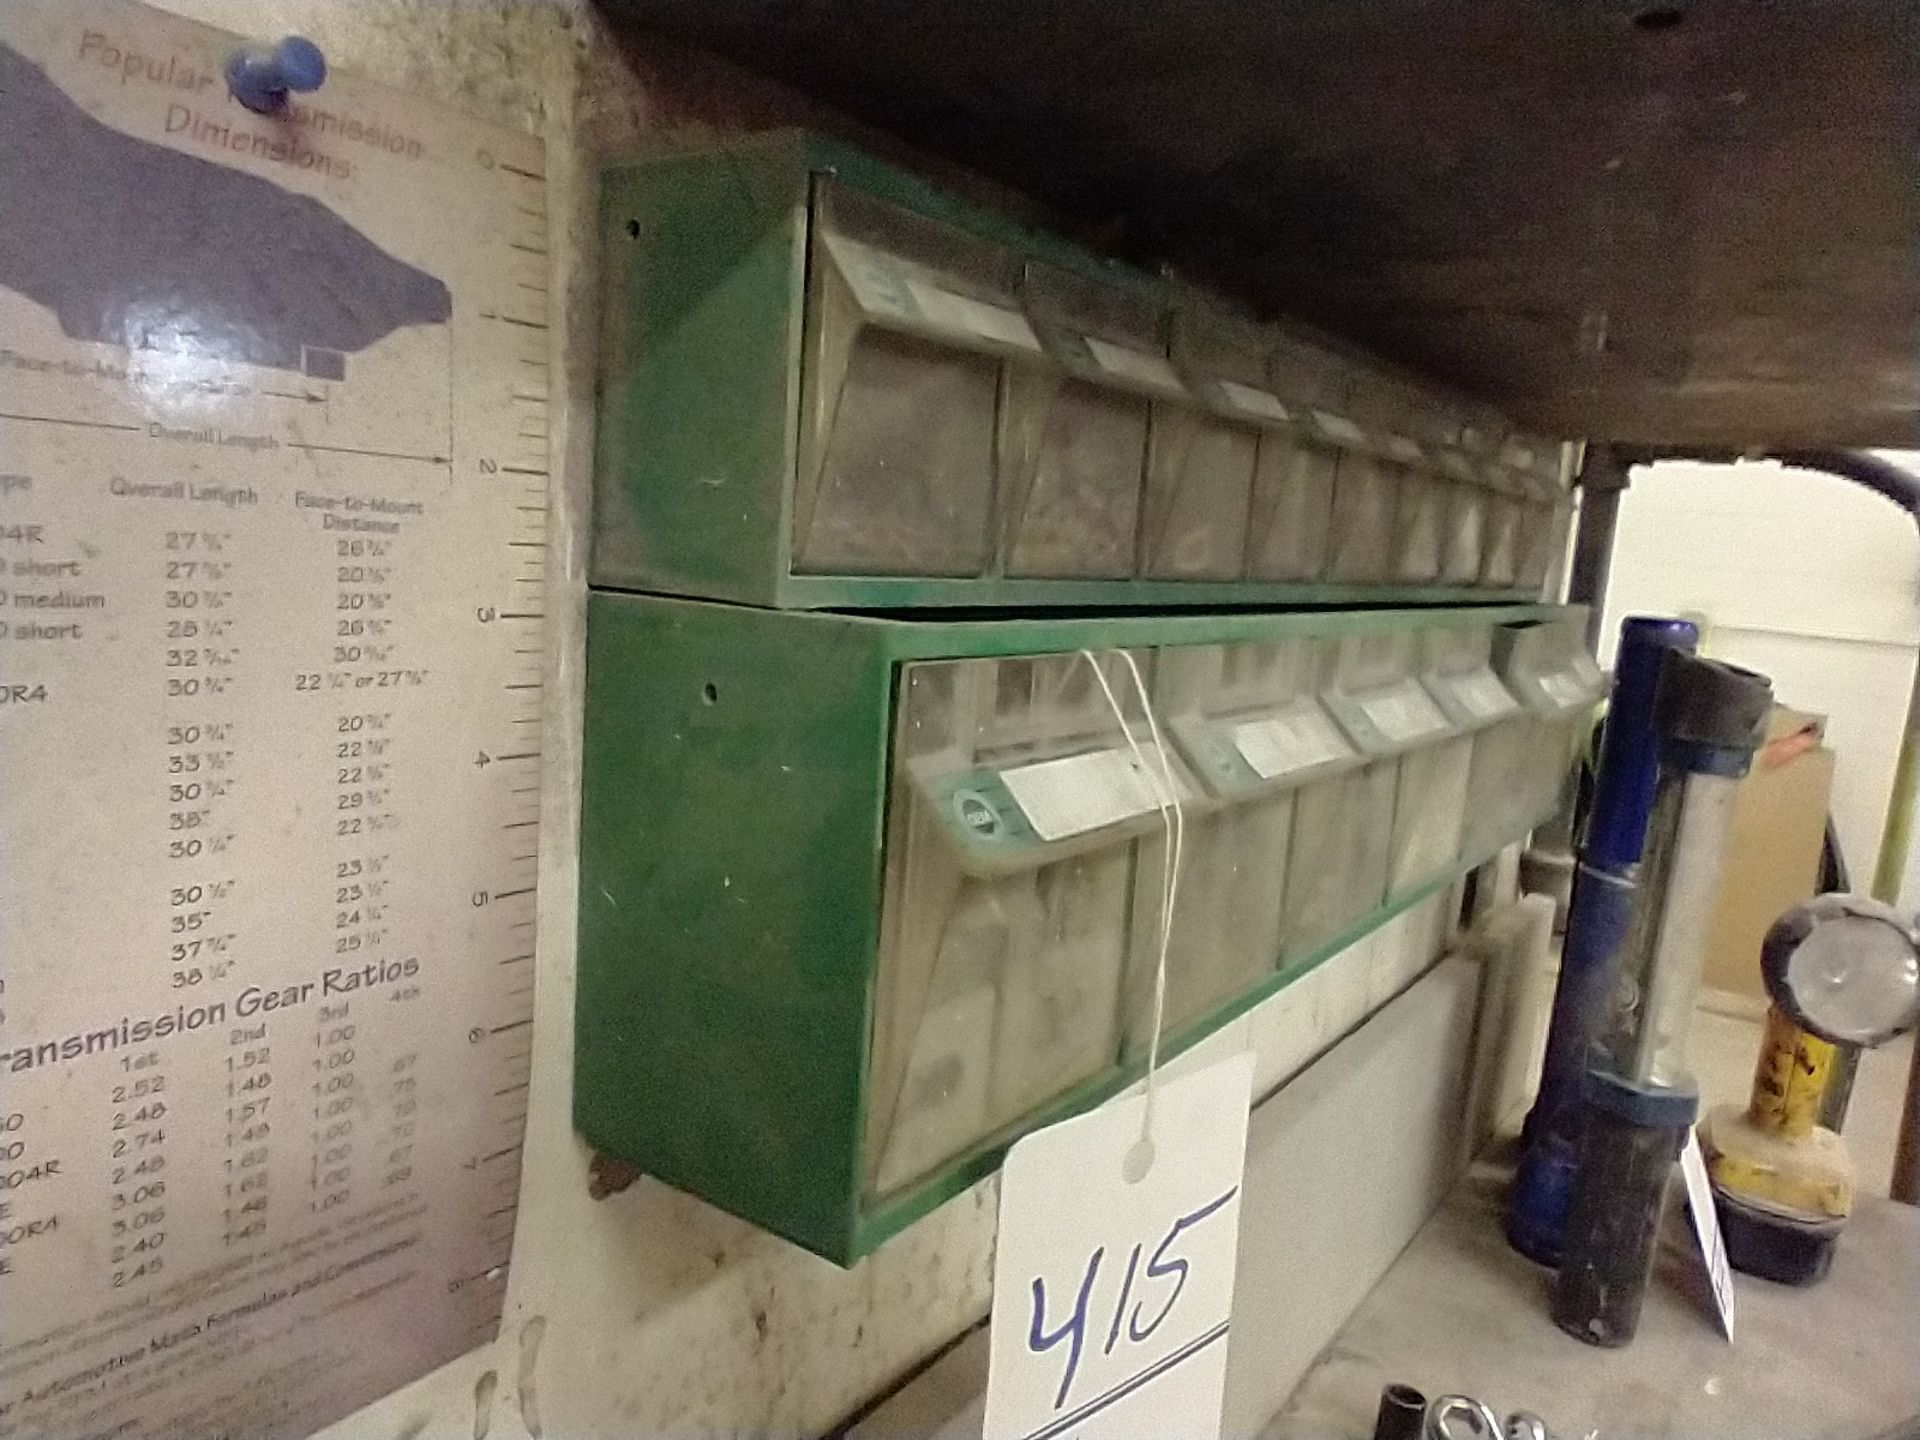 LOT OF 2 WALL MOUNTED SMALL PARTS SORTERS WITH CONTENTS - Image 3 of 3